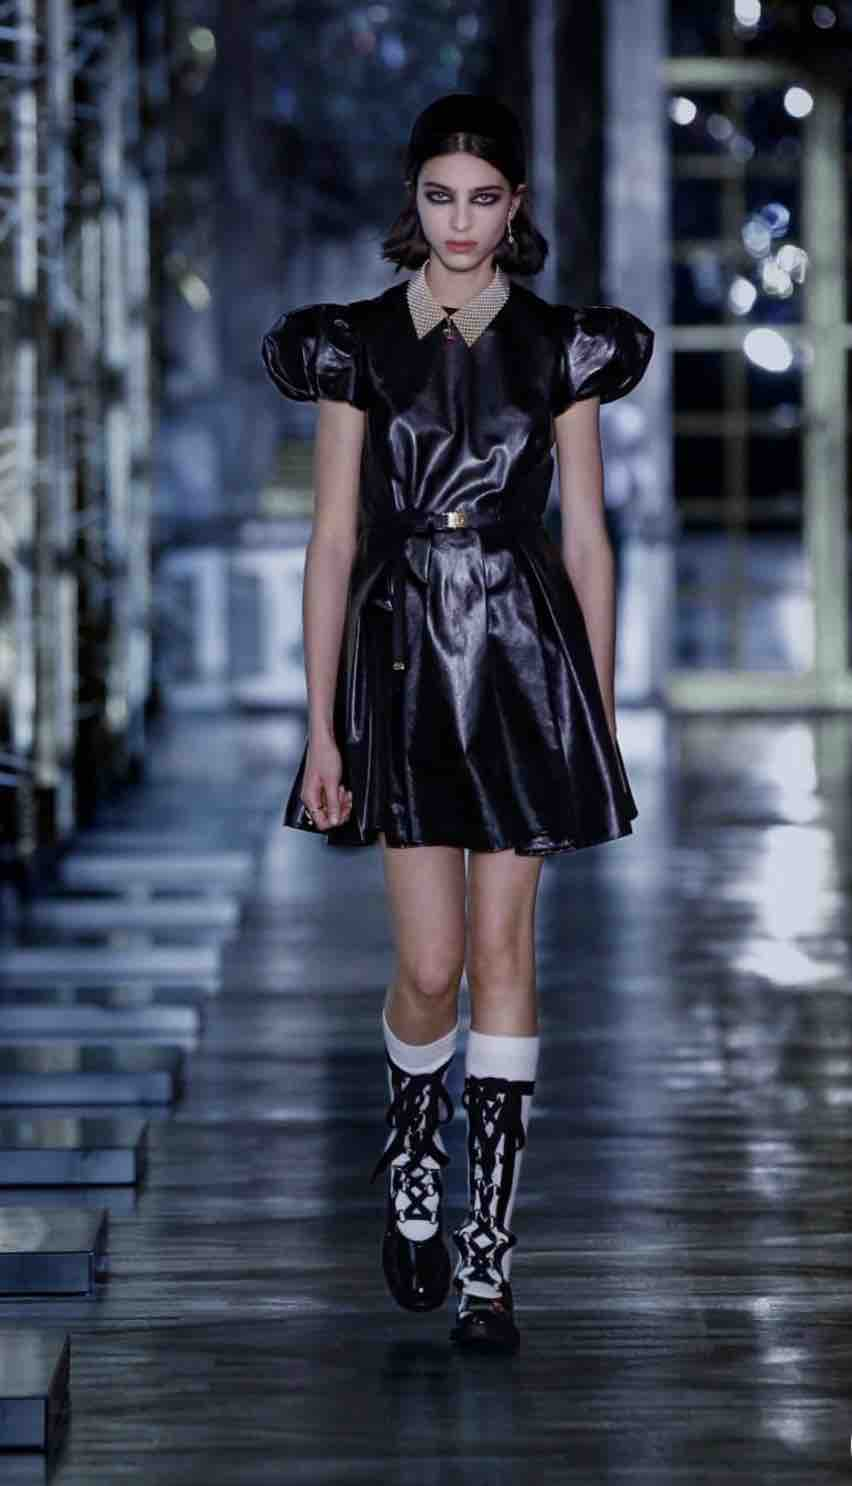 Christian Dior Leather One Of The Style Trends To Shop For Fall 2021